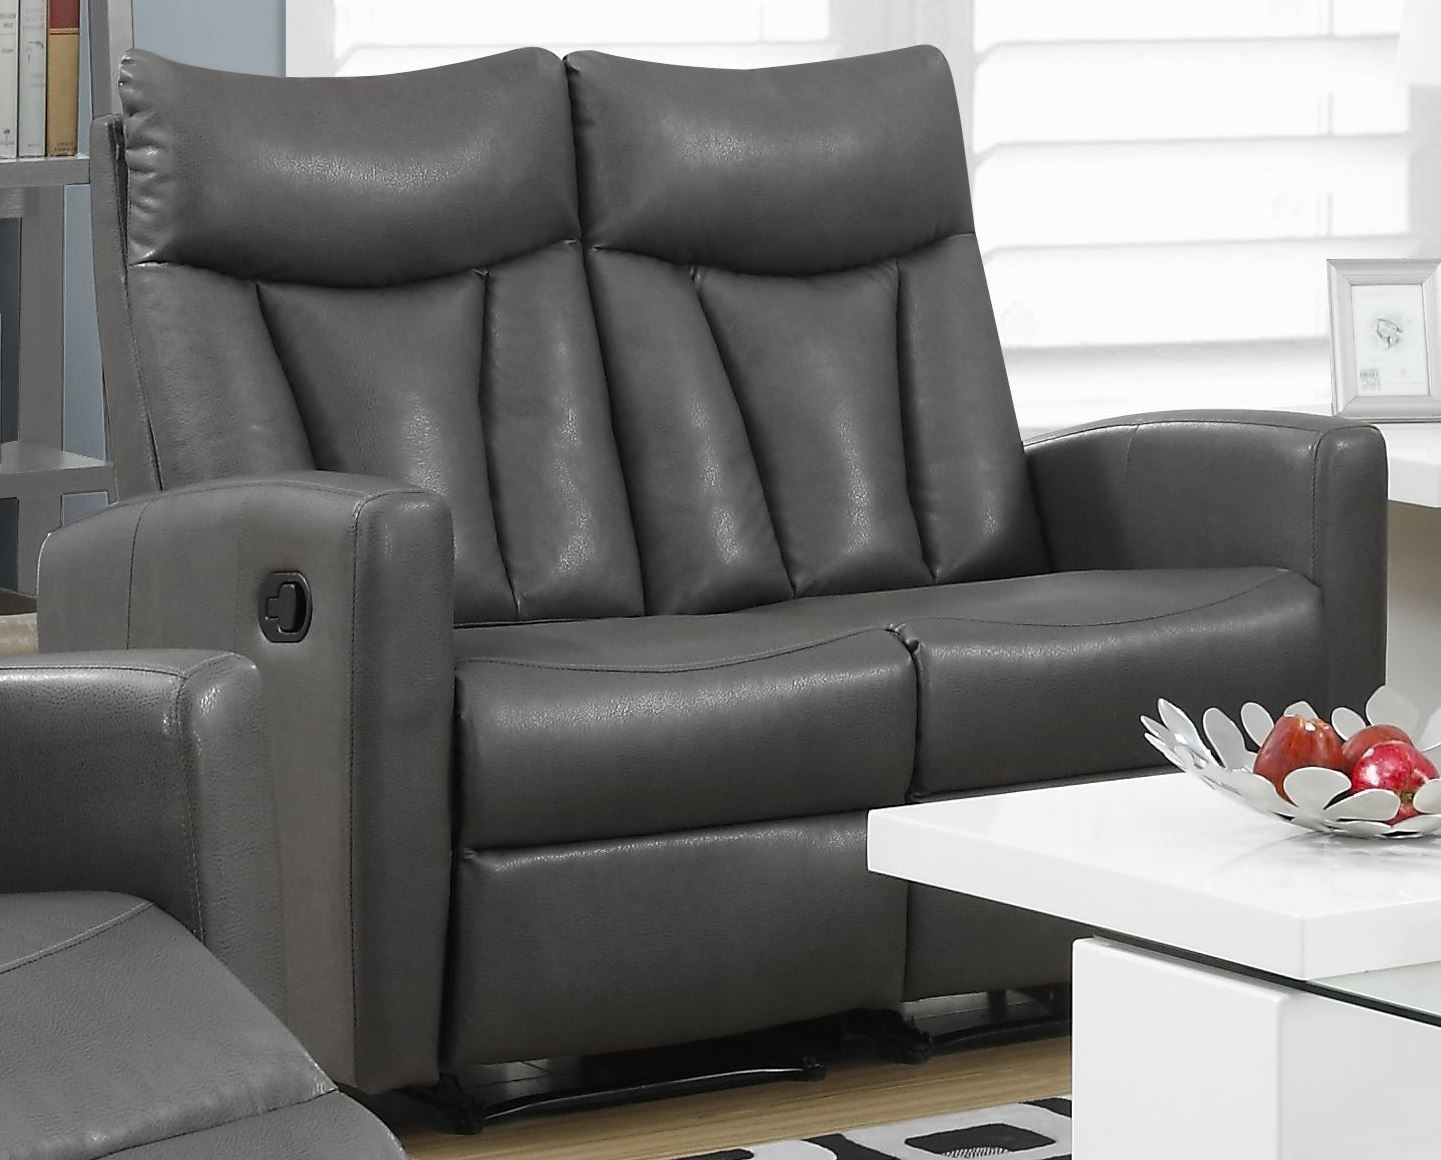 87gy 2 Charcoal Grey Bonded Leather Reclining Loveseat 87gy 2 Monarch